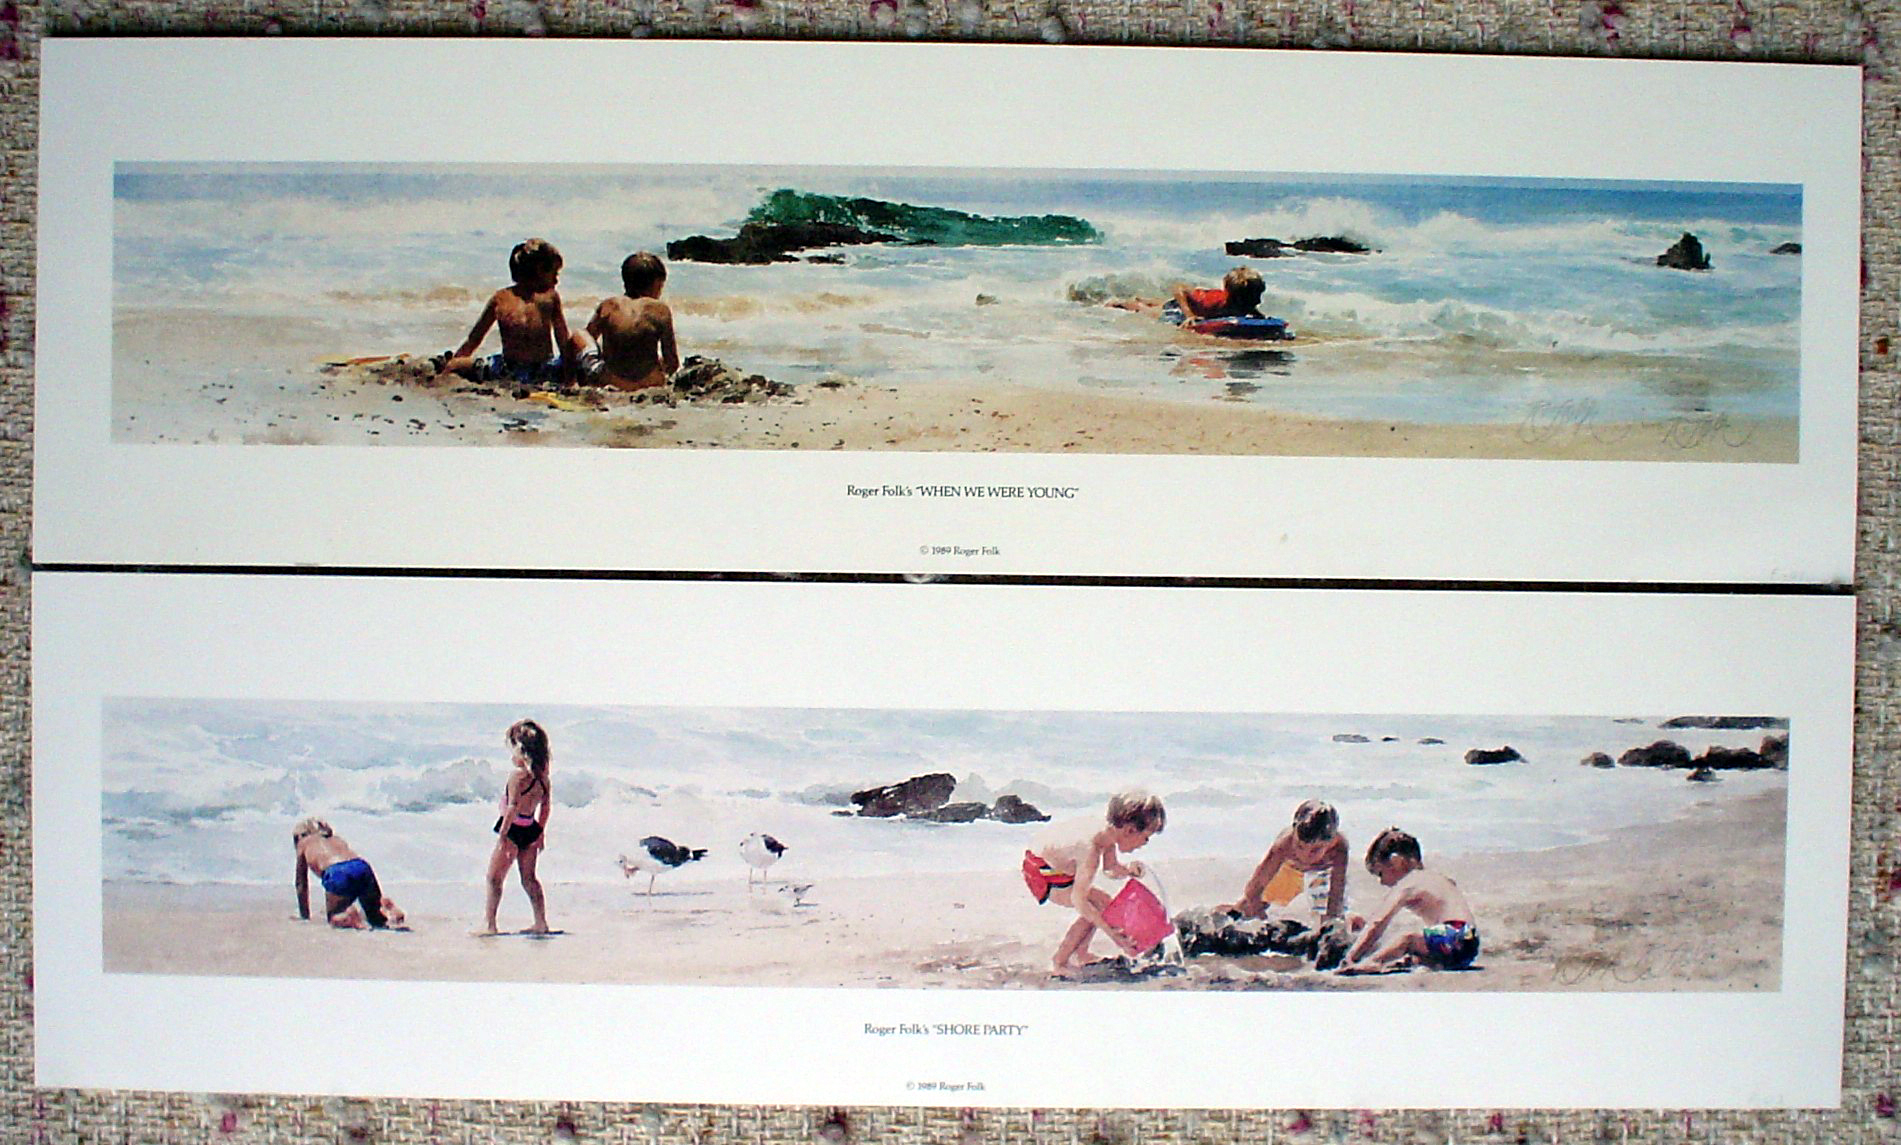 When We Were Young and Shore Party by Roger Folk, both signed by artist, shown with full margins - two offset lithograph fine art prints